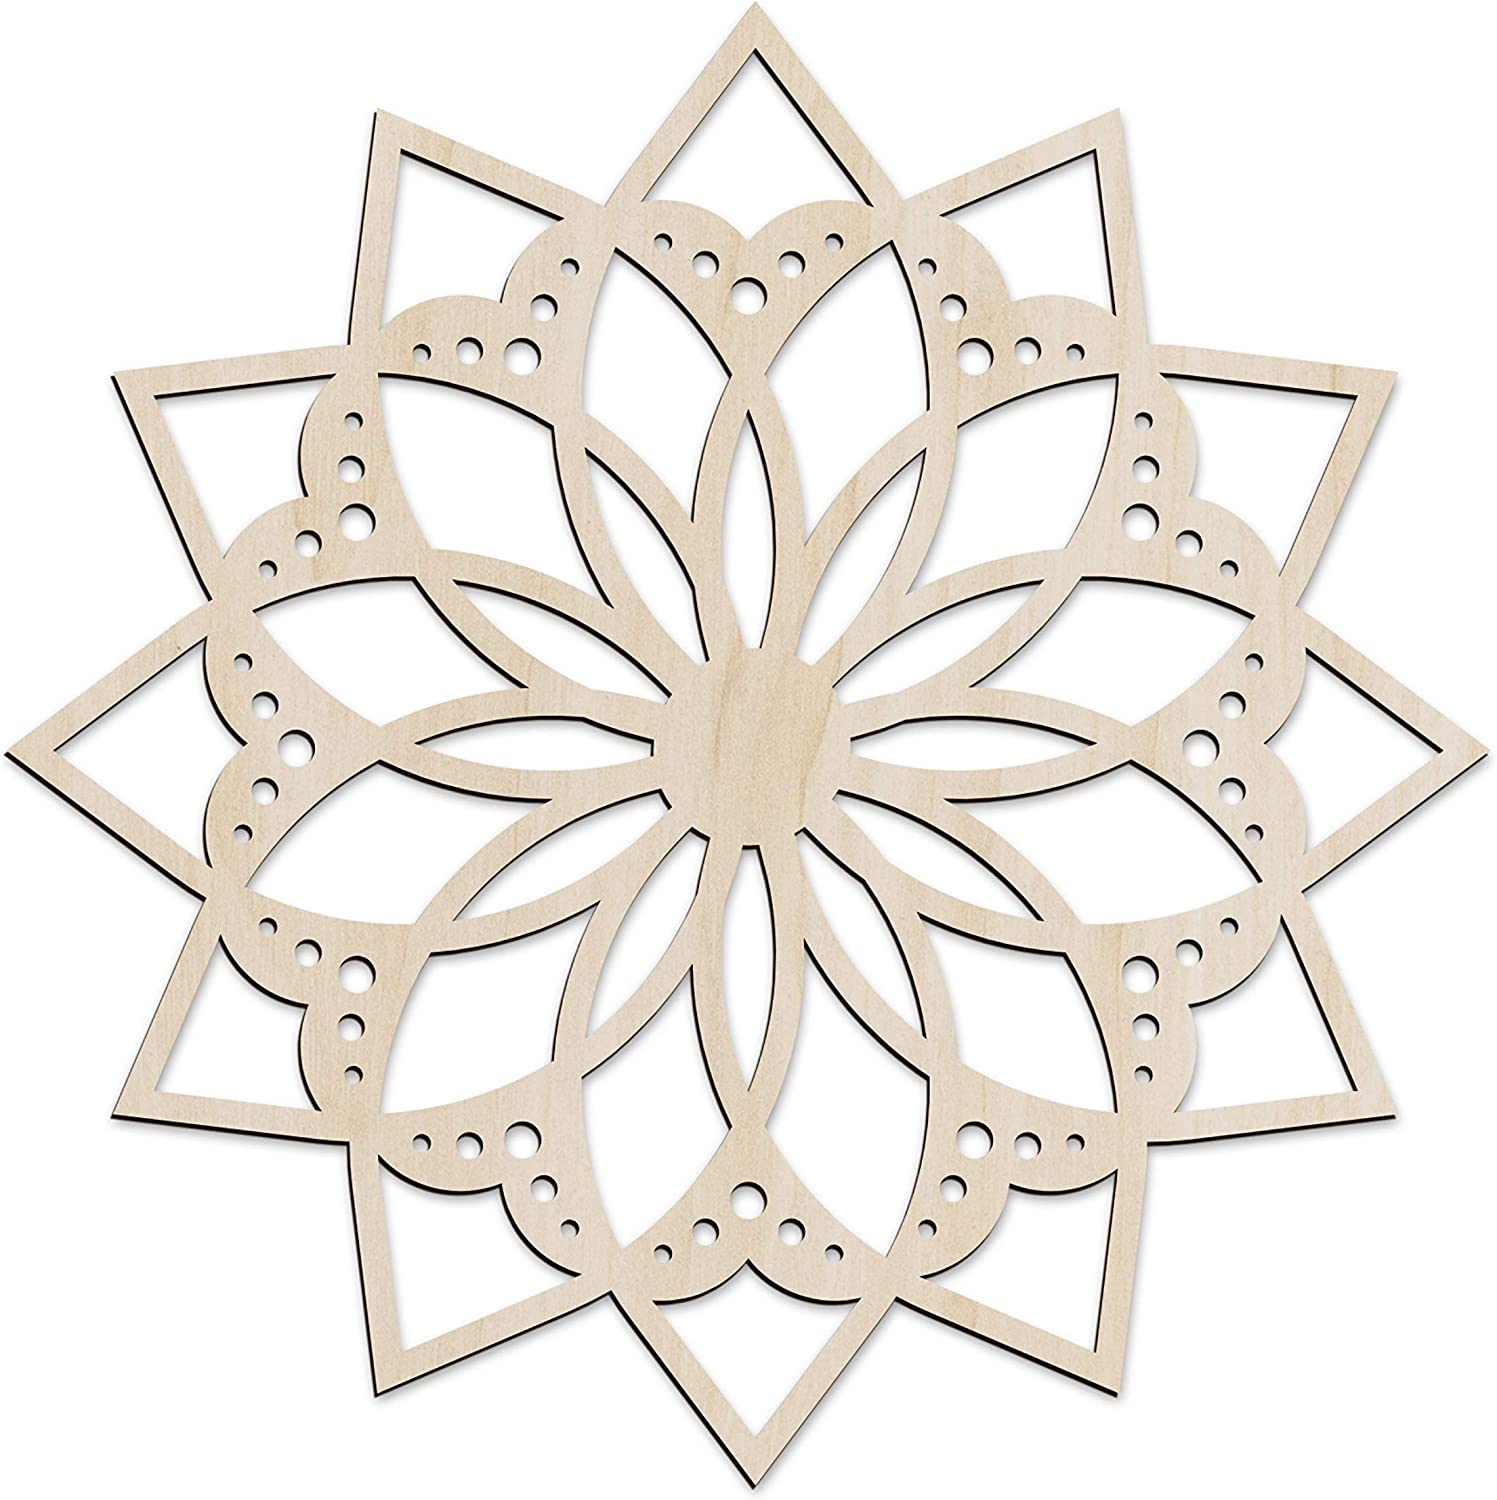 Ambesonne Mandala Wooden Wall Art, Flower Themed Oriental Asian Ornament, Birch Wood Plywood Rustic Wall Art Accent for Hallway Bedroom Living Room Cafes and Offices, 11.4